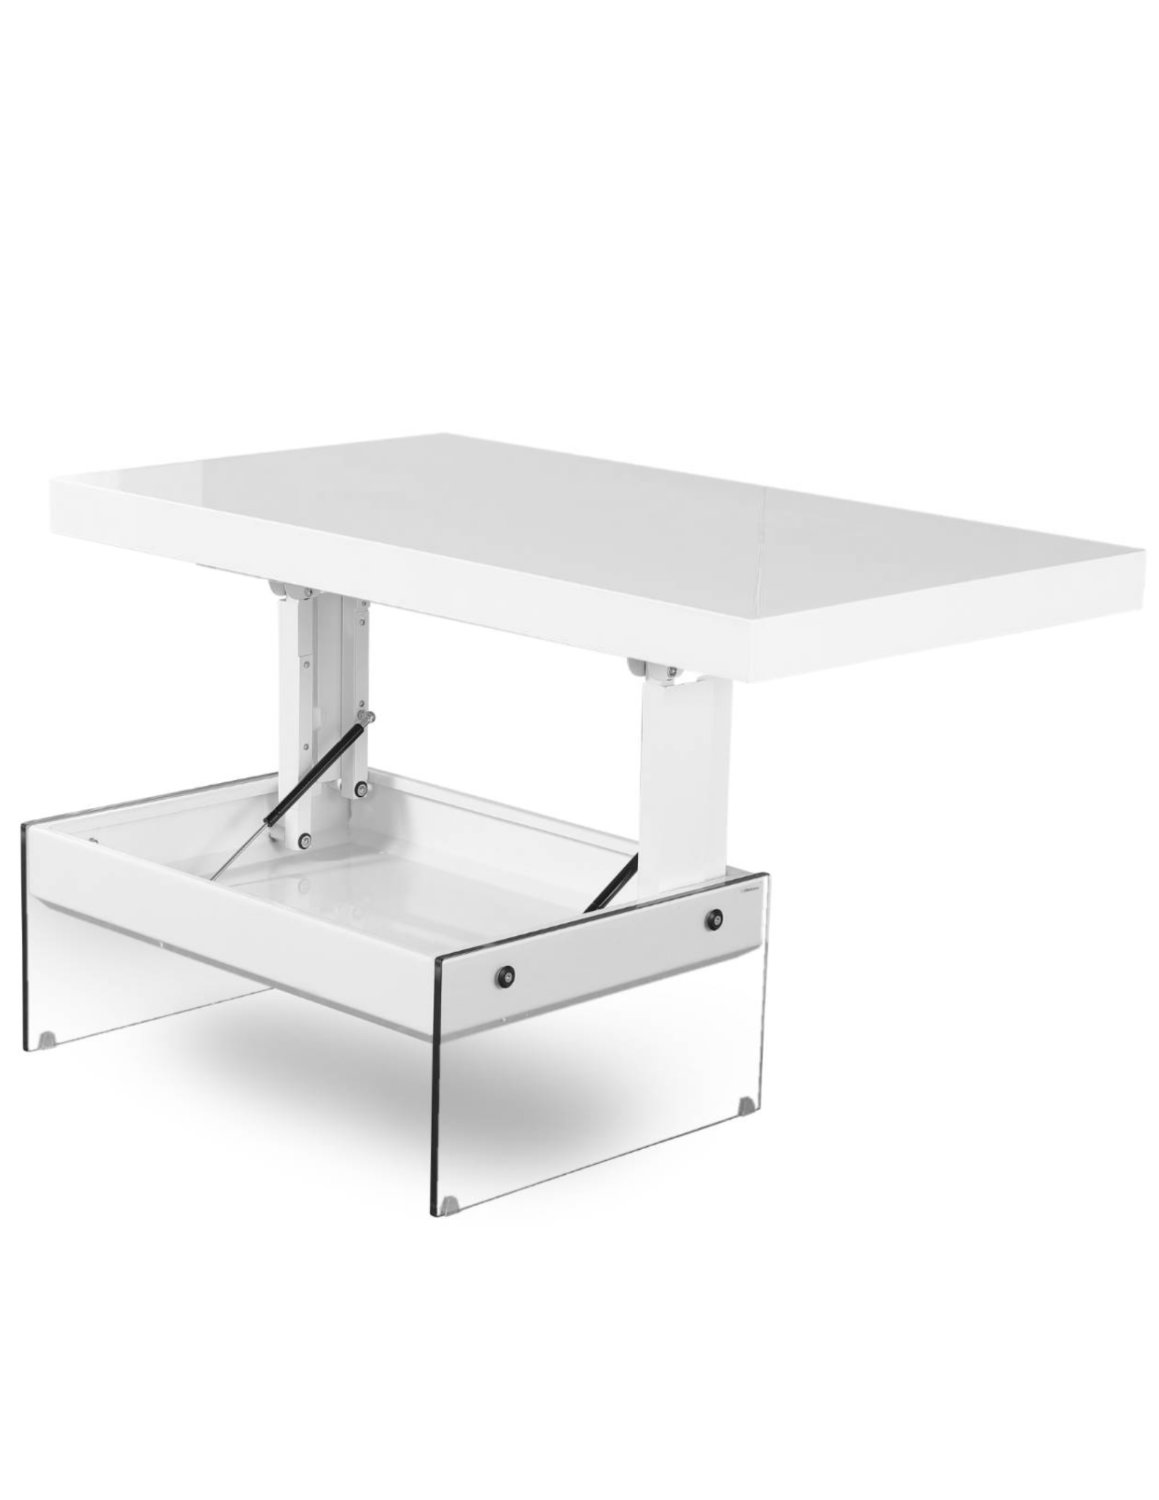 Superb The Cadence Wood Lift Top Table With A Glass Base Lamtechconsult Wood Chair Design Ideas Lamtechconsultcom